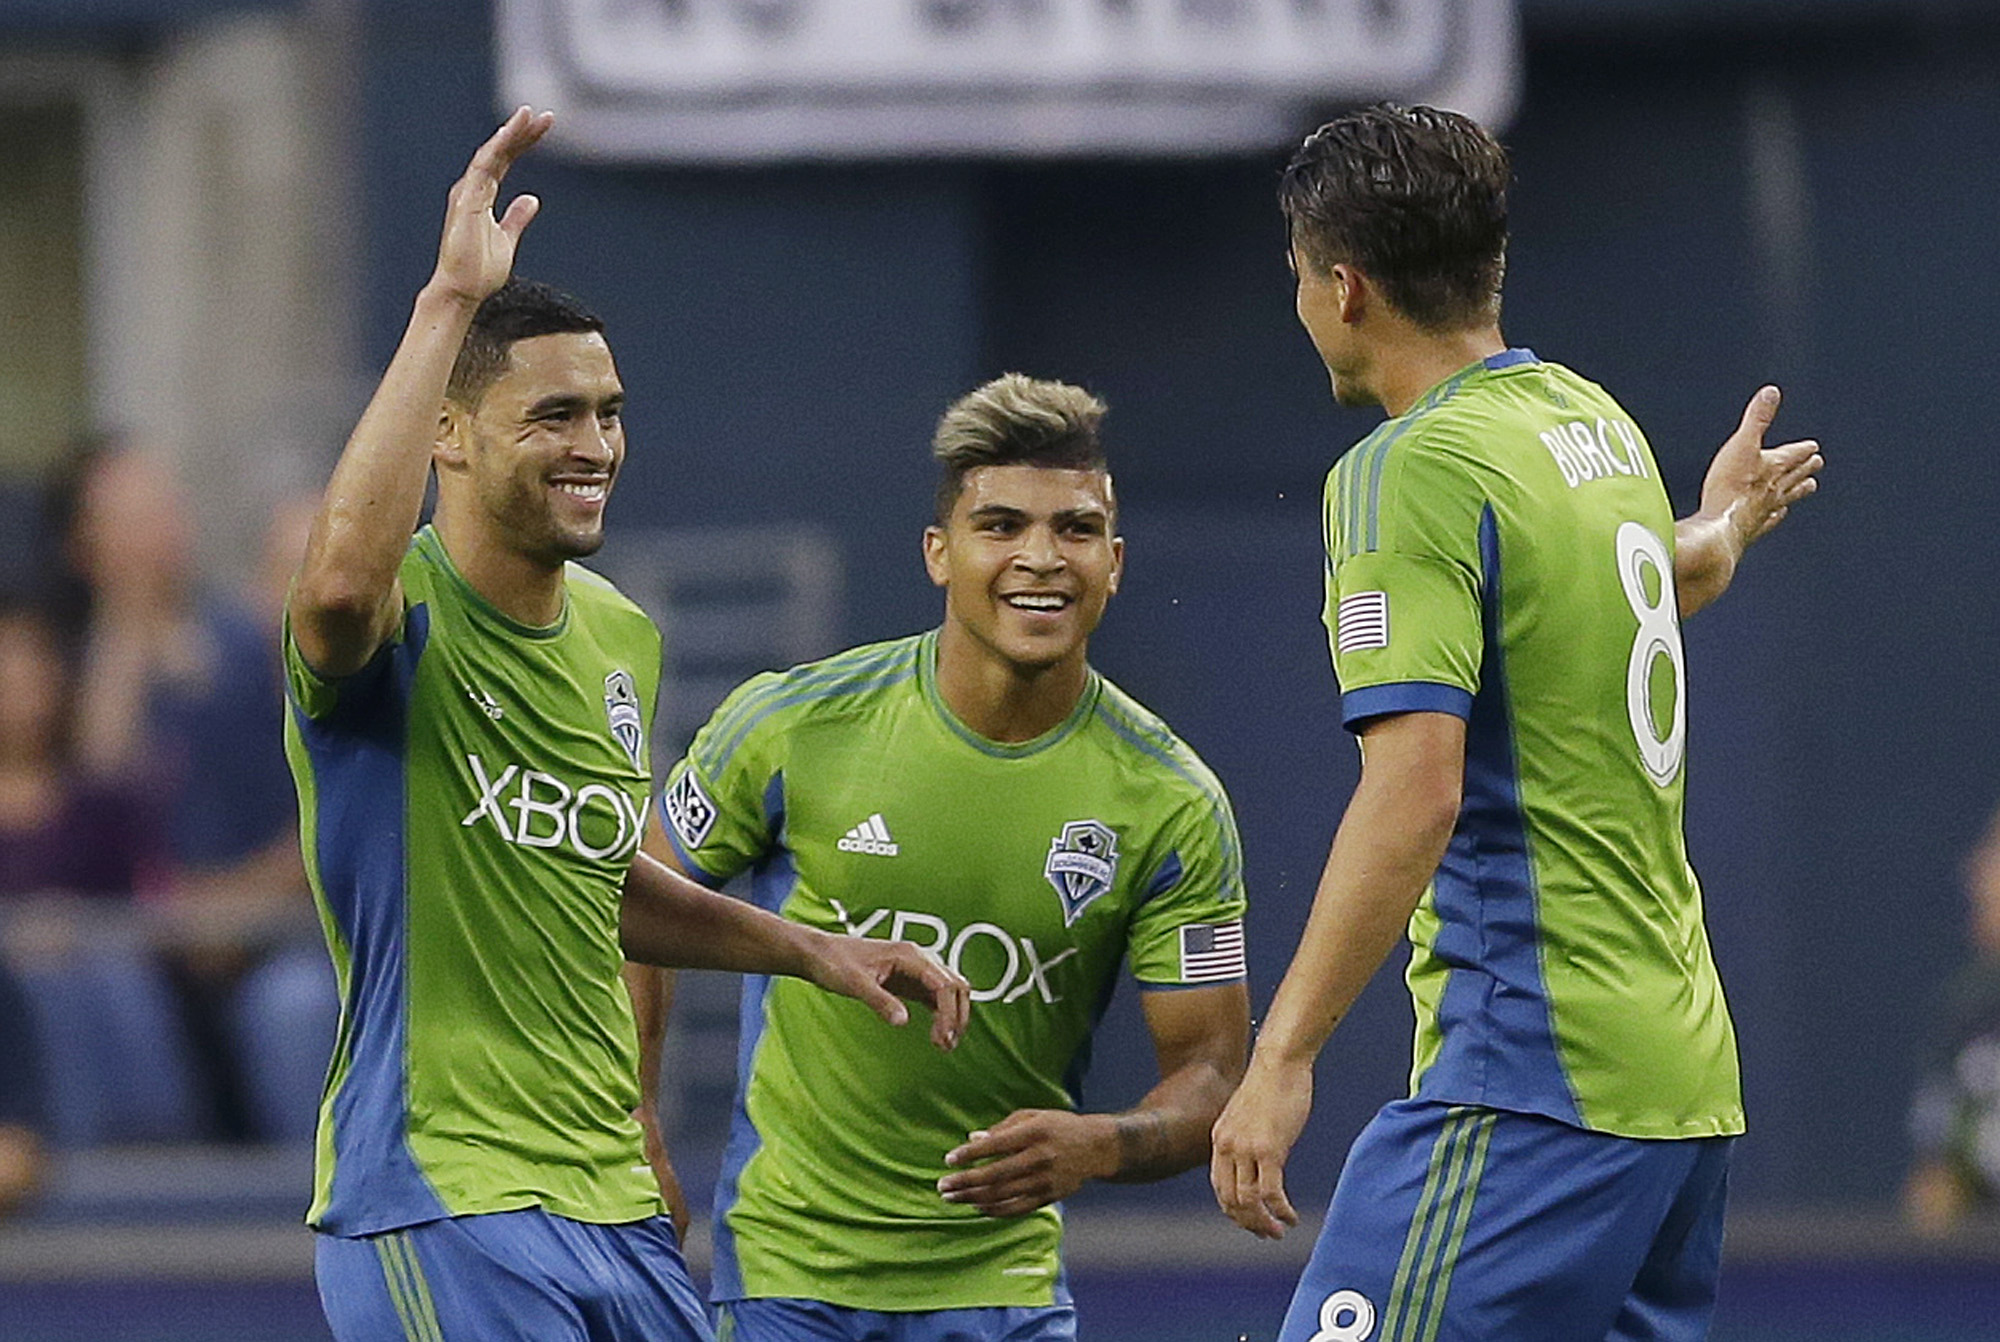 Neagle leads surging Sounders past Chivas USA 1-0